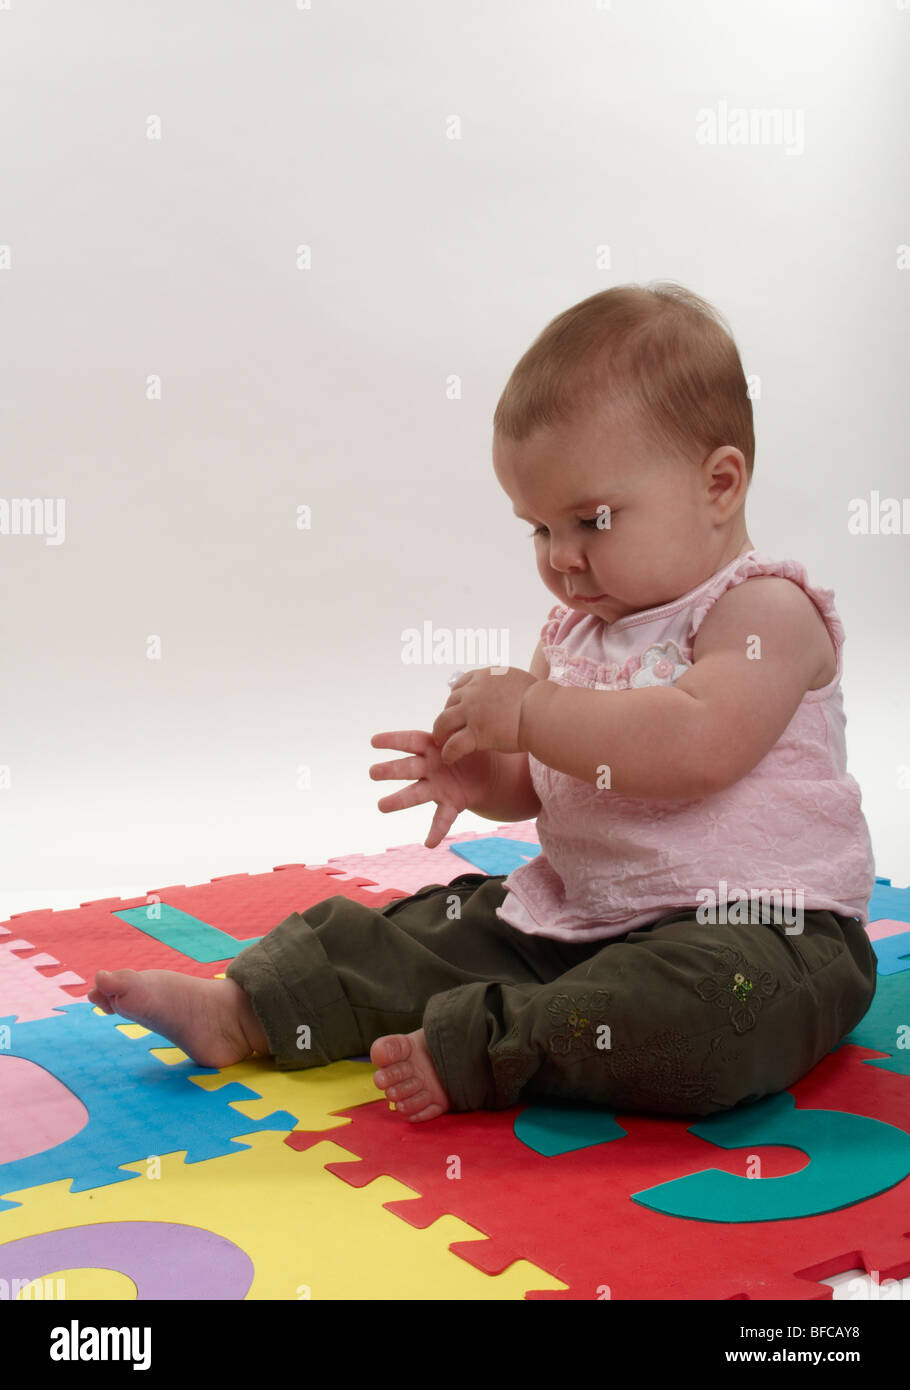 Baby 12 Monate 12 Month Old Baby Girl Playing On Floor In Pink Stock Photo - Alamy